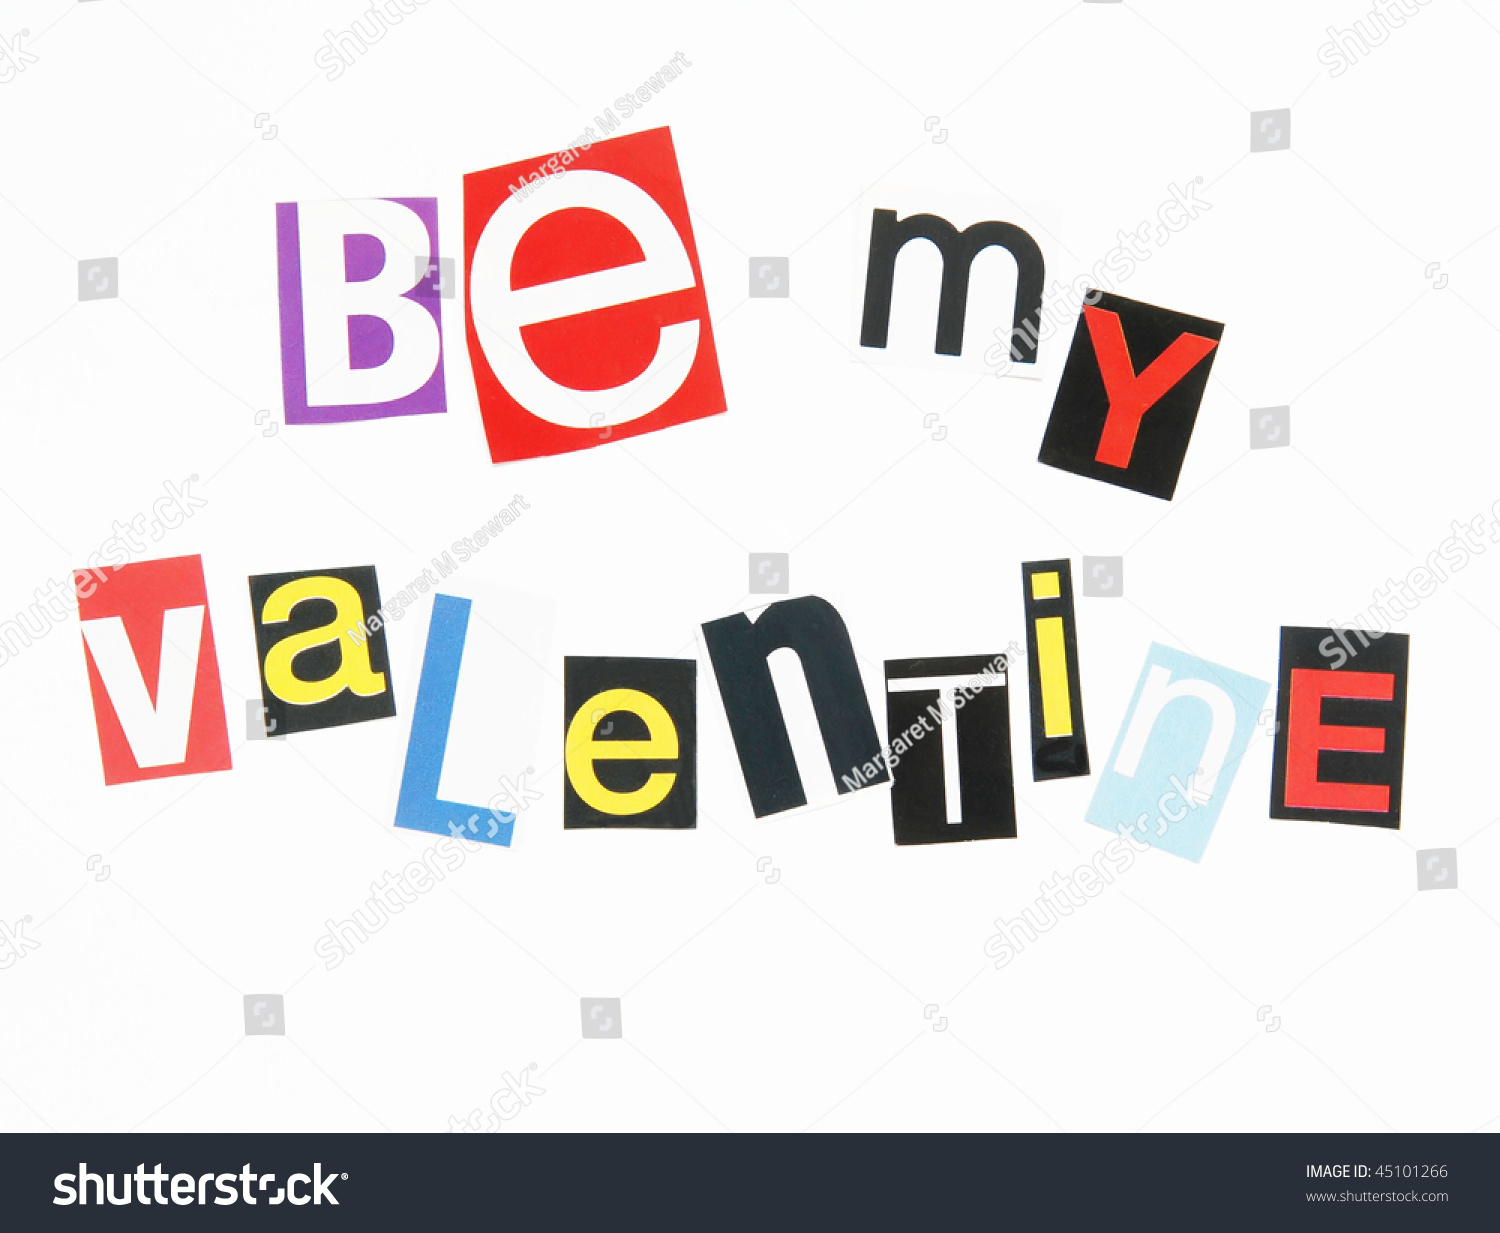 Be my valentine letters cutout magazines stock photo edit now be my valentine in letters cutout from magazines ransom note style spiritdancerdesigns Choice Image